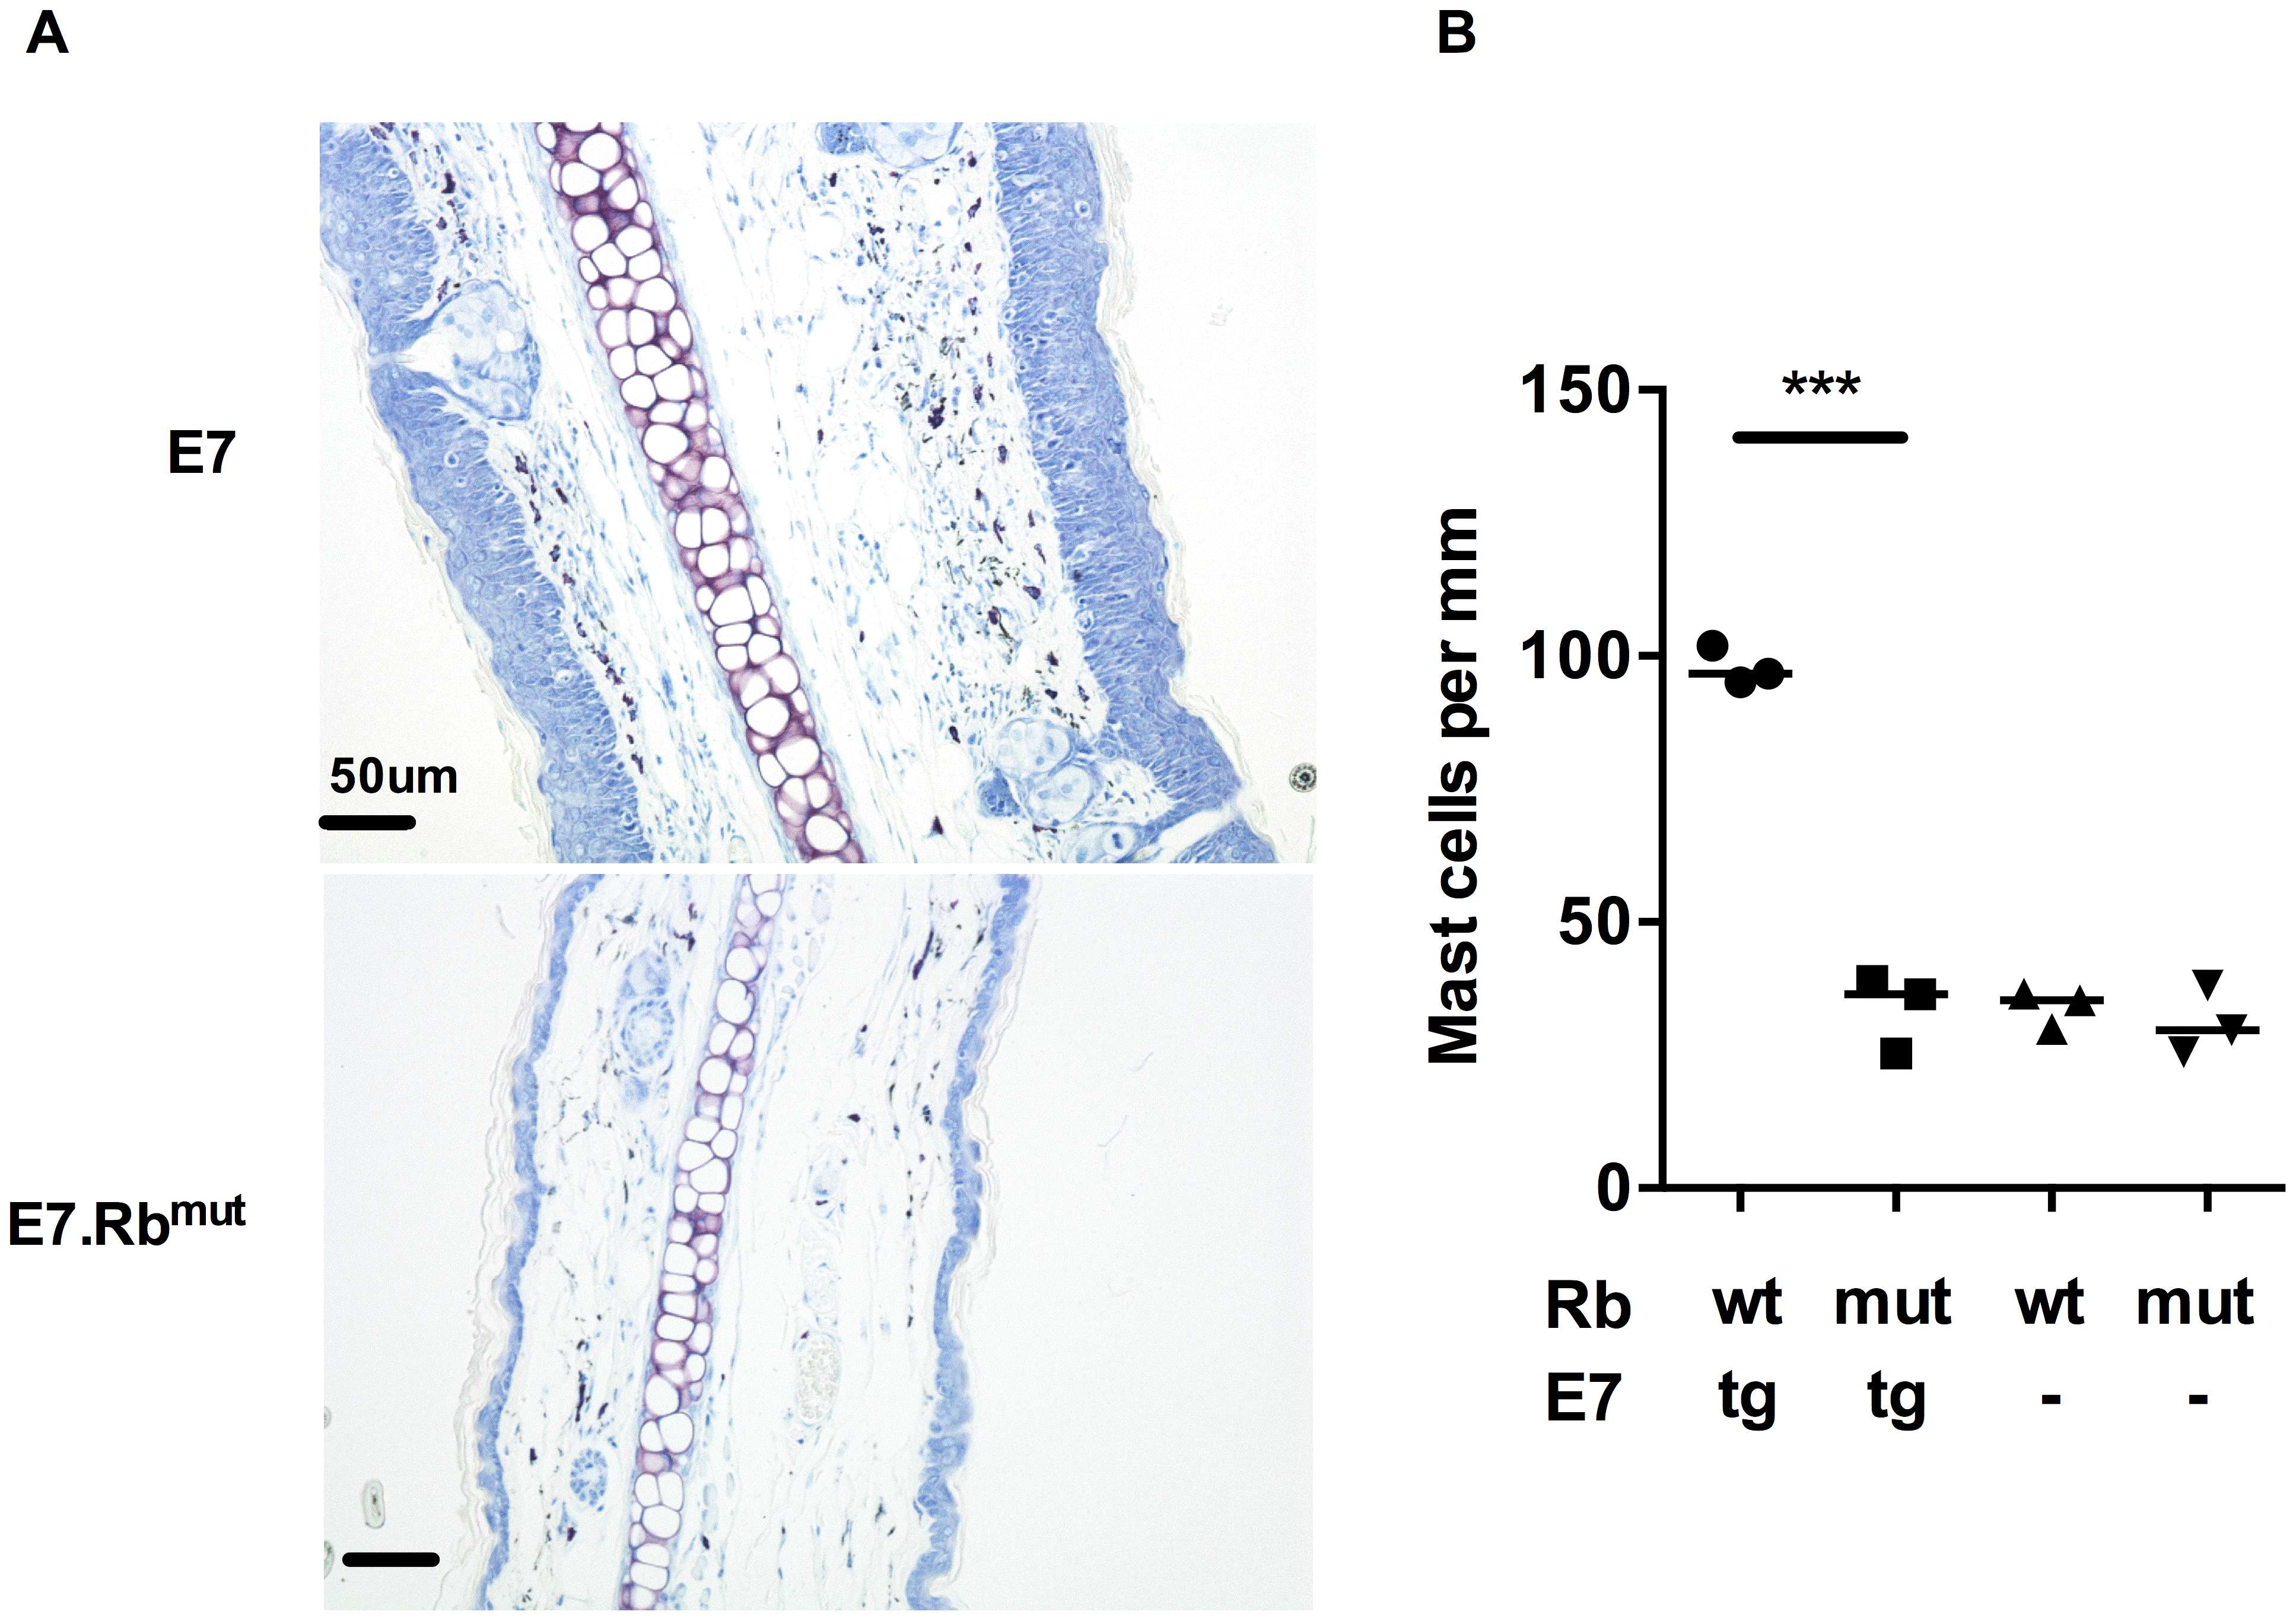 MC infiltration in ear skin is dependent on E7 hyperplasia.